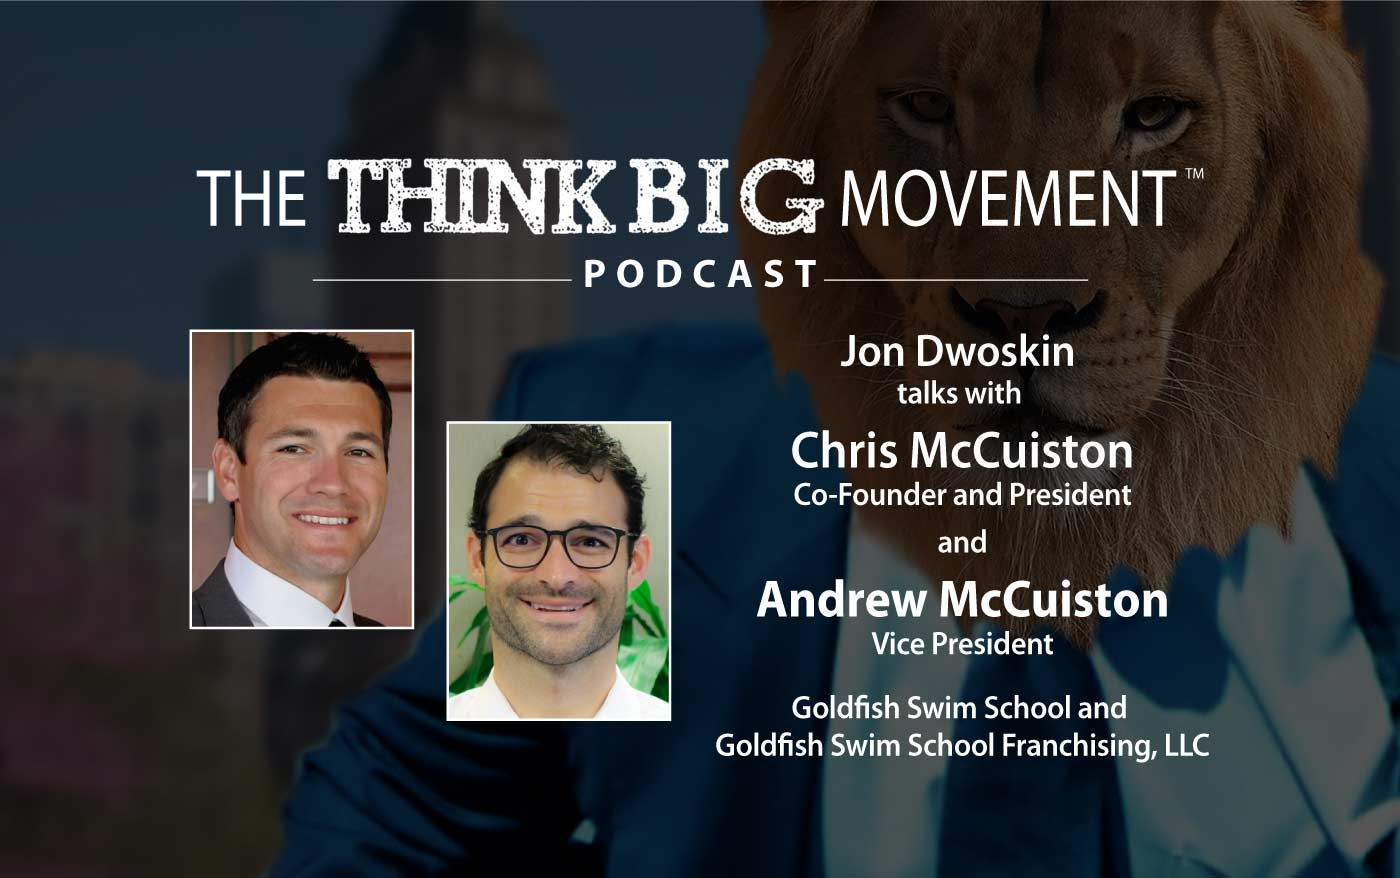 Think Big Movement Podcast - Jon Dwoskin Interviews Chris and Andrew McCuiston of Goldfish Swim School